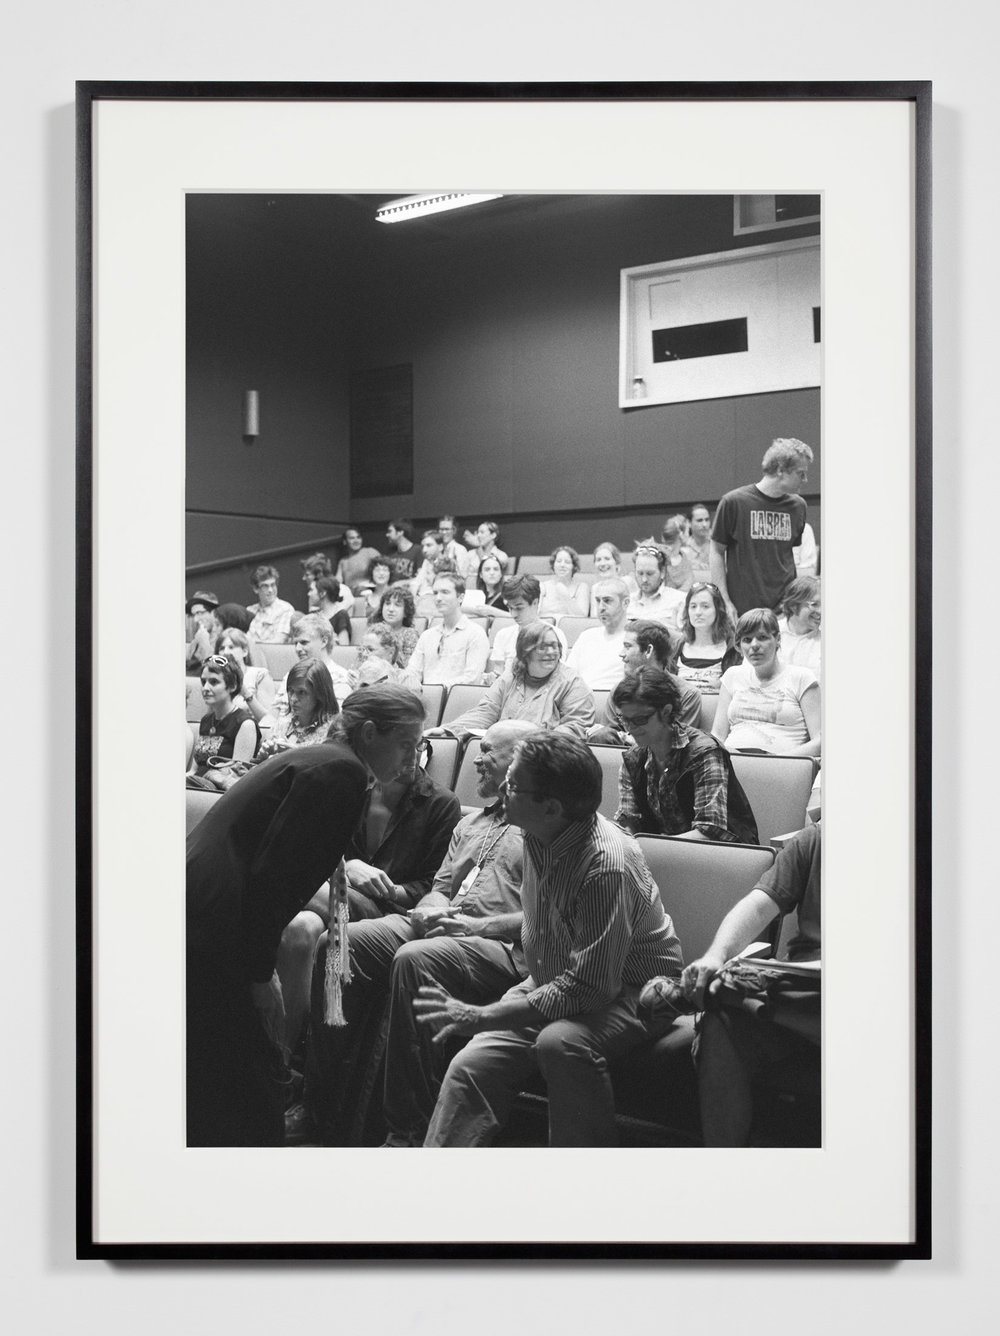 College Lecture Hall, Annandale-on-Hudson, New York, July 11, 2009   2011  Epson Ultrachrome K3 archival ink jet print on Hahnemühle Photo Rag paper  36 3/8 x 26 3/8 inches   Industrial Portraits, 2008–    A Diagram of Forces, 2011